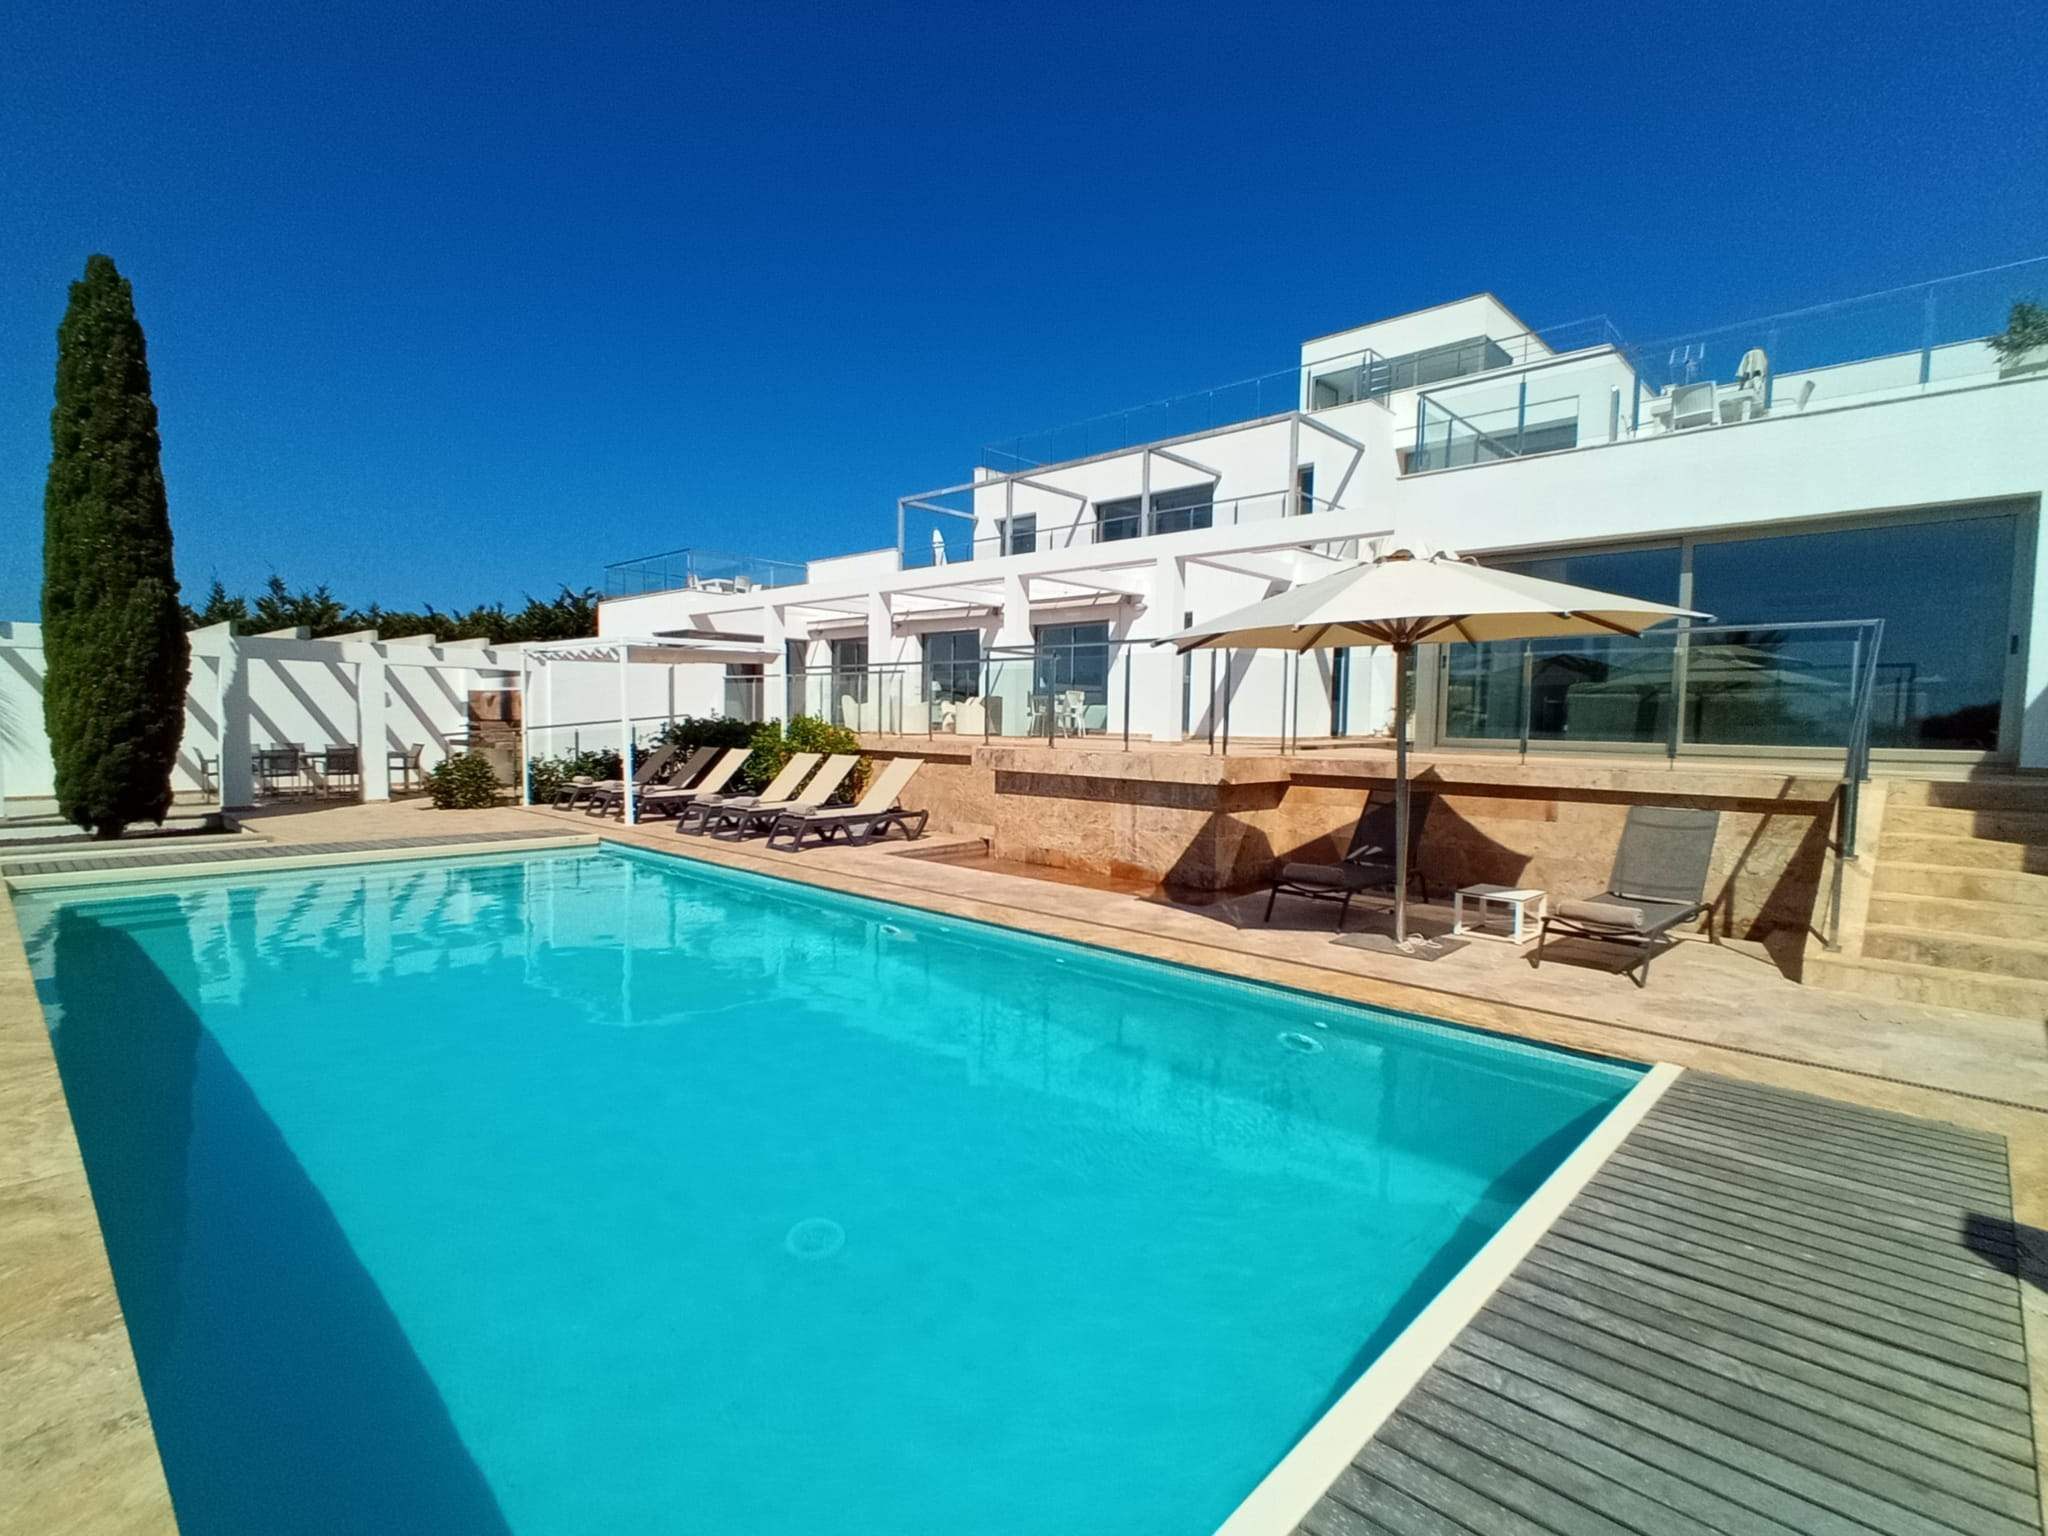 Casa Pitiusa, 4 Bedroom rate, 4 bedroom villa in Mahon, San Luis & South East, Menorca